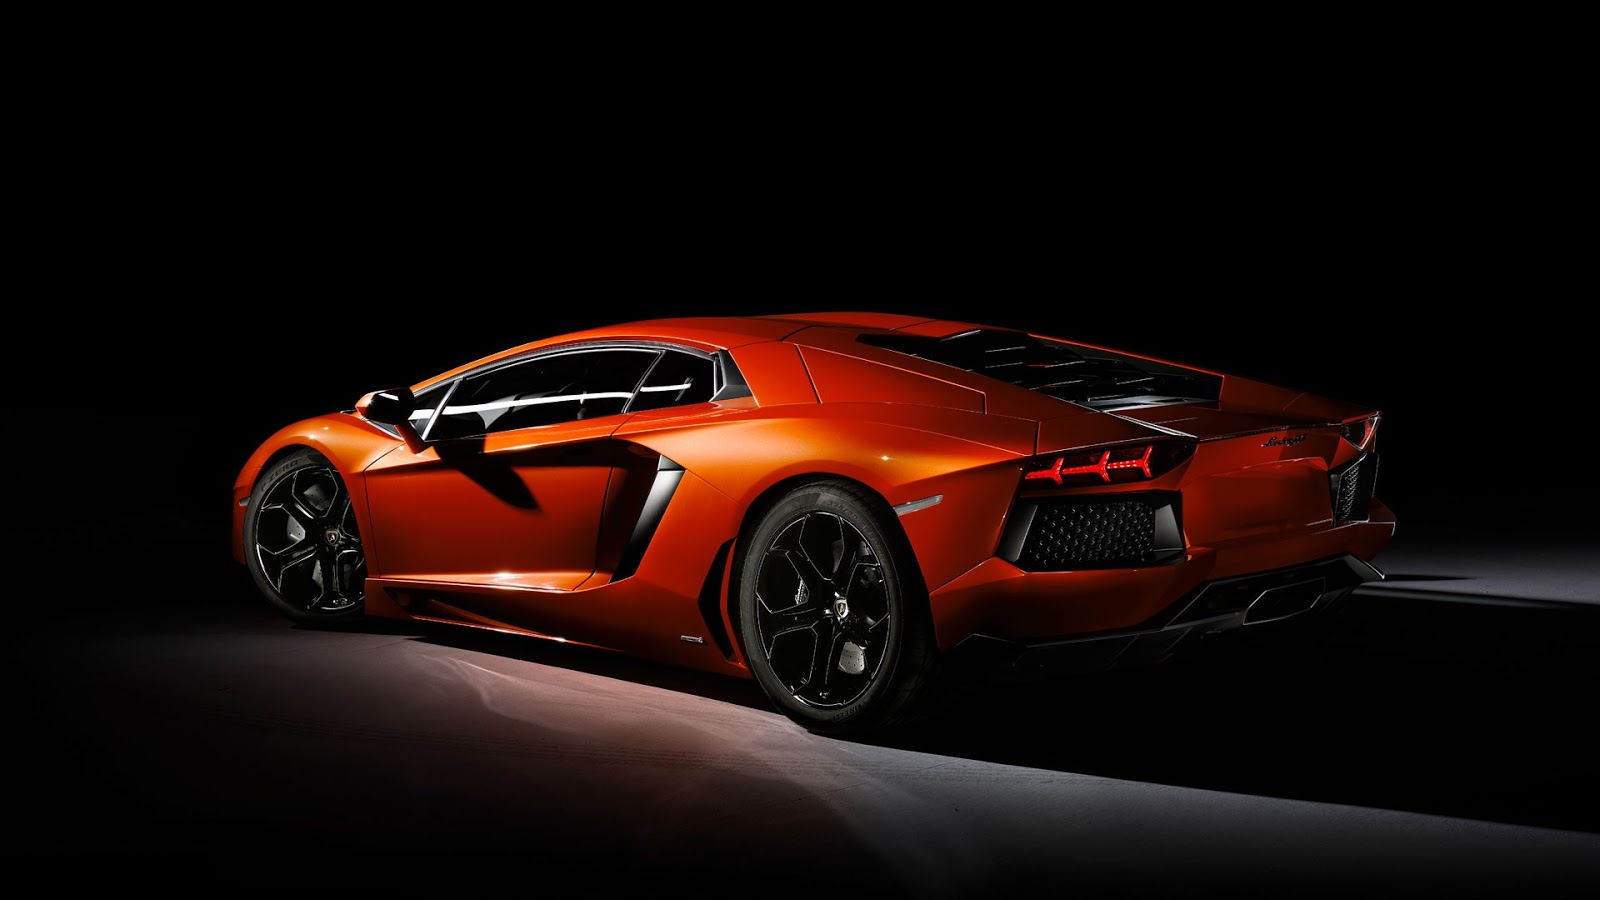 luxury lamborghini cars lamborghini aventador wallpaper hd. Black Bedroom Furniture Sets. Home Design Ideas